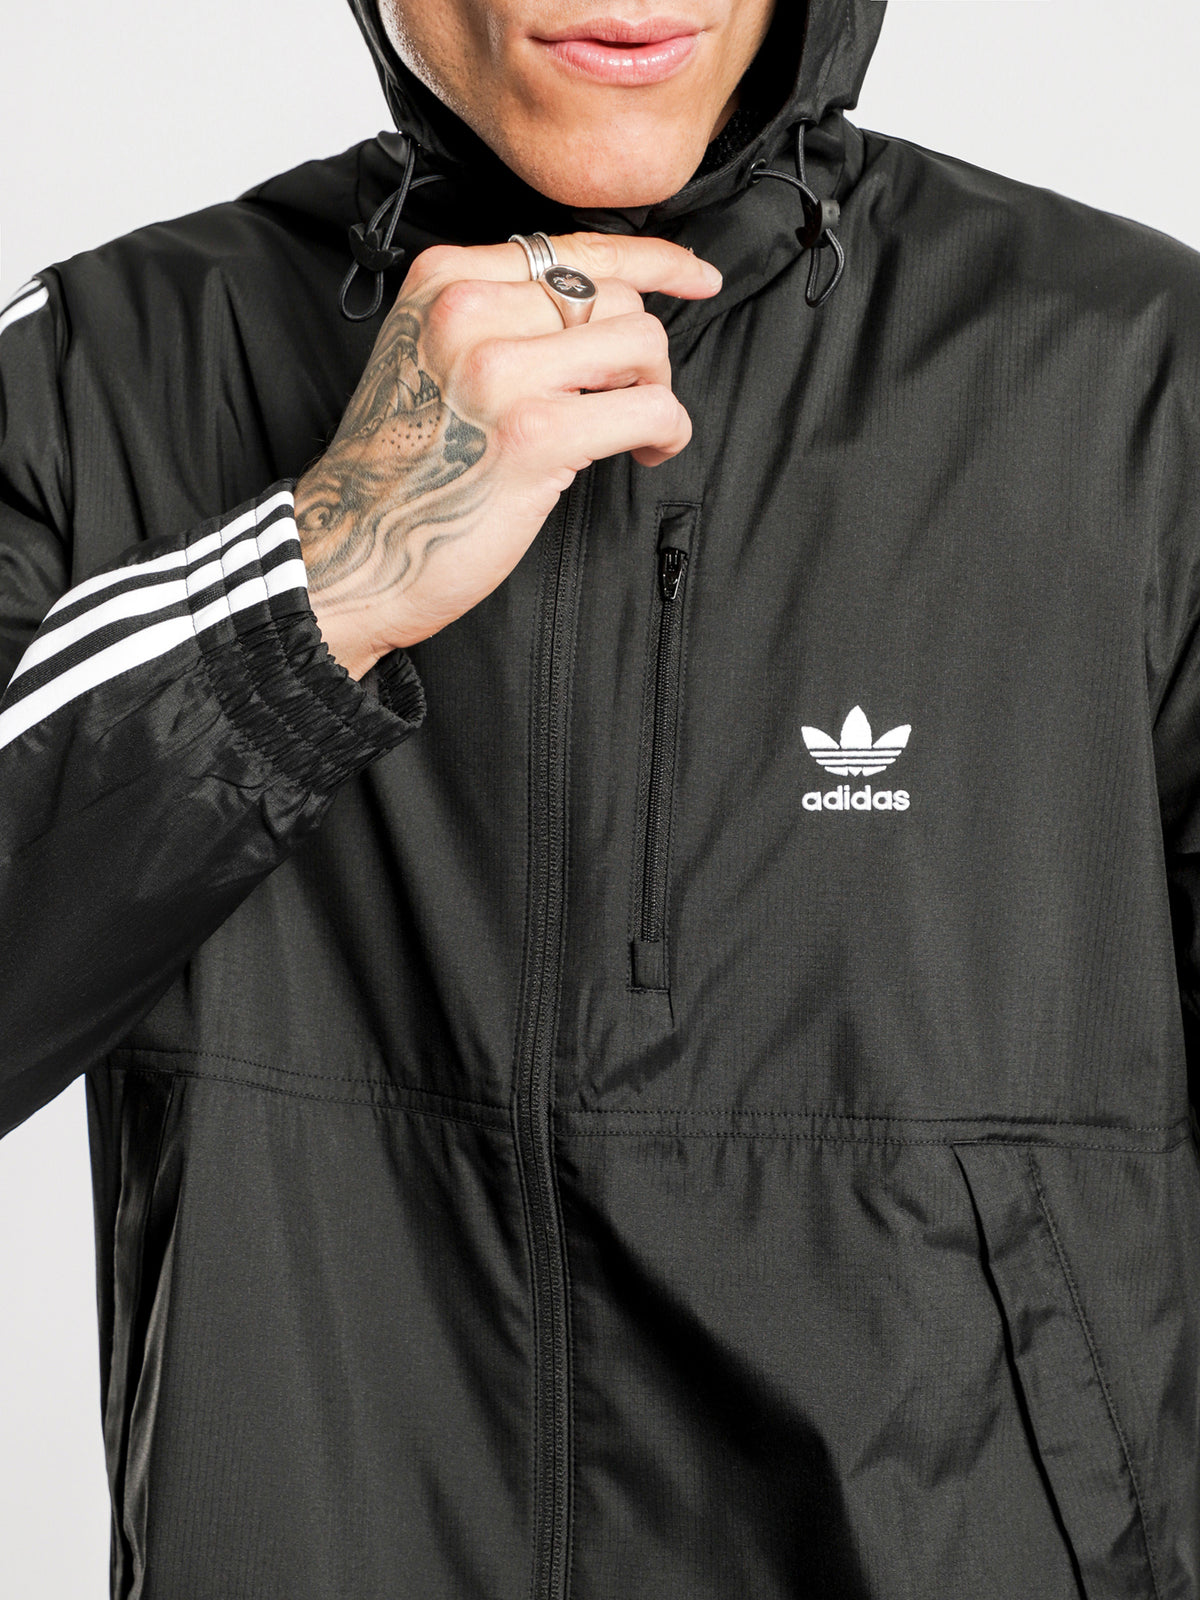 Lock Up Wind Breaker in Black